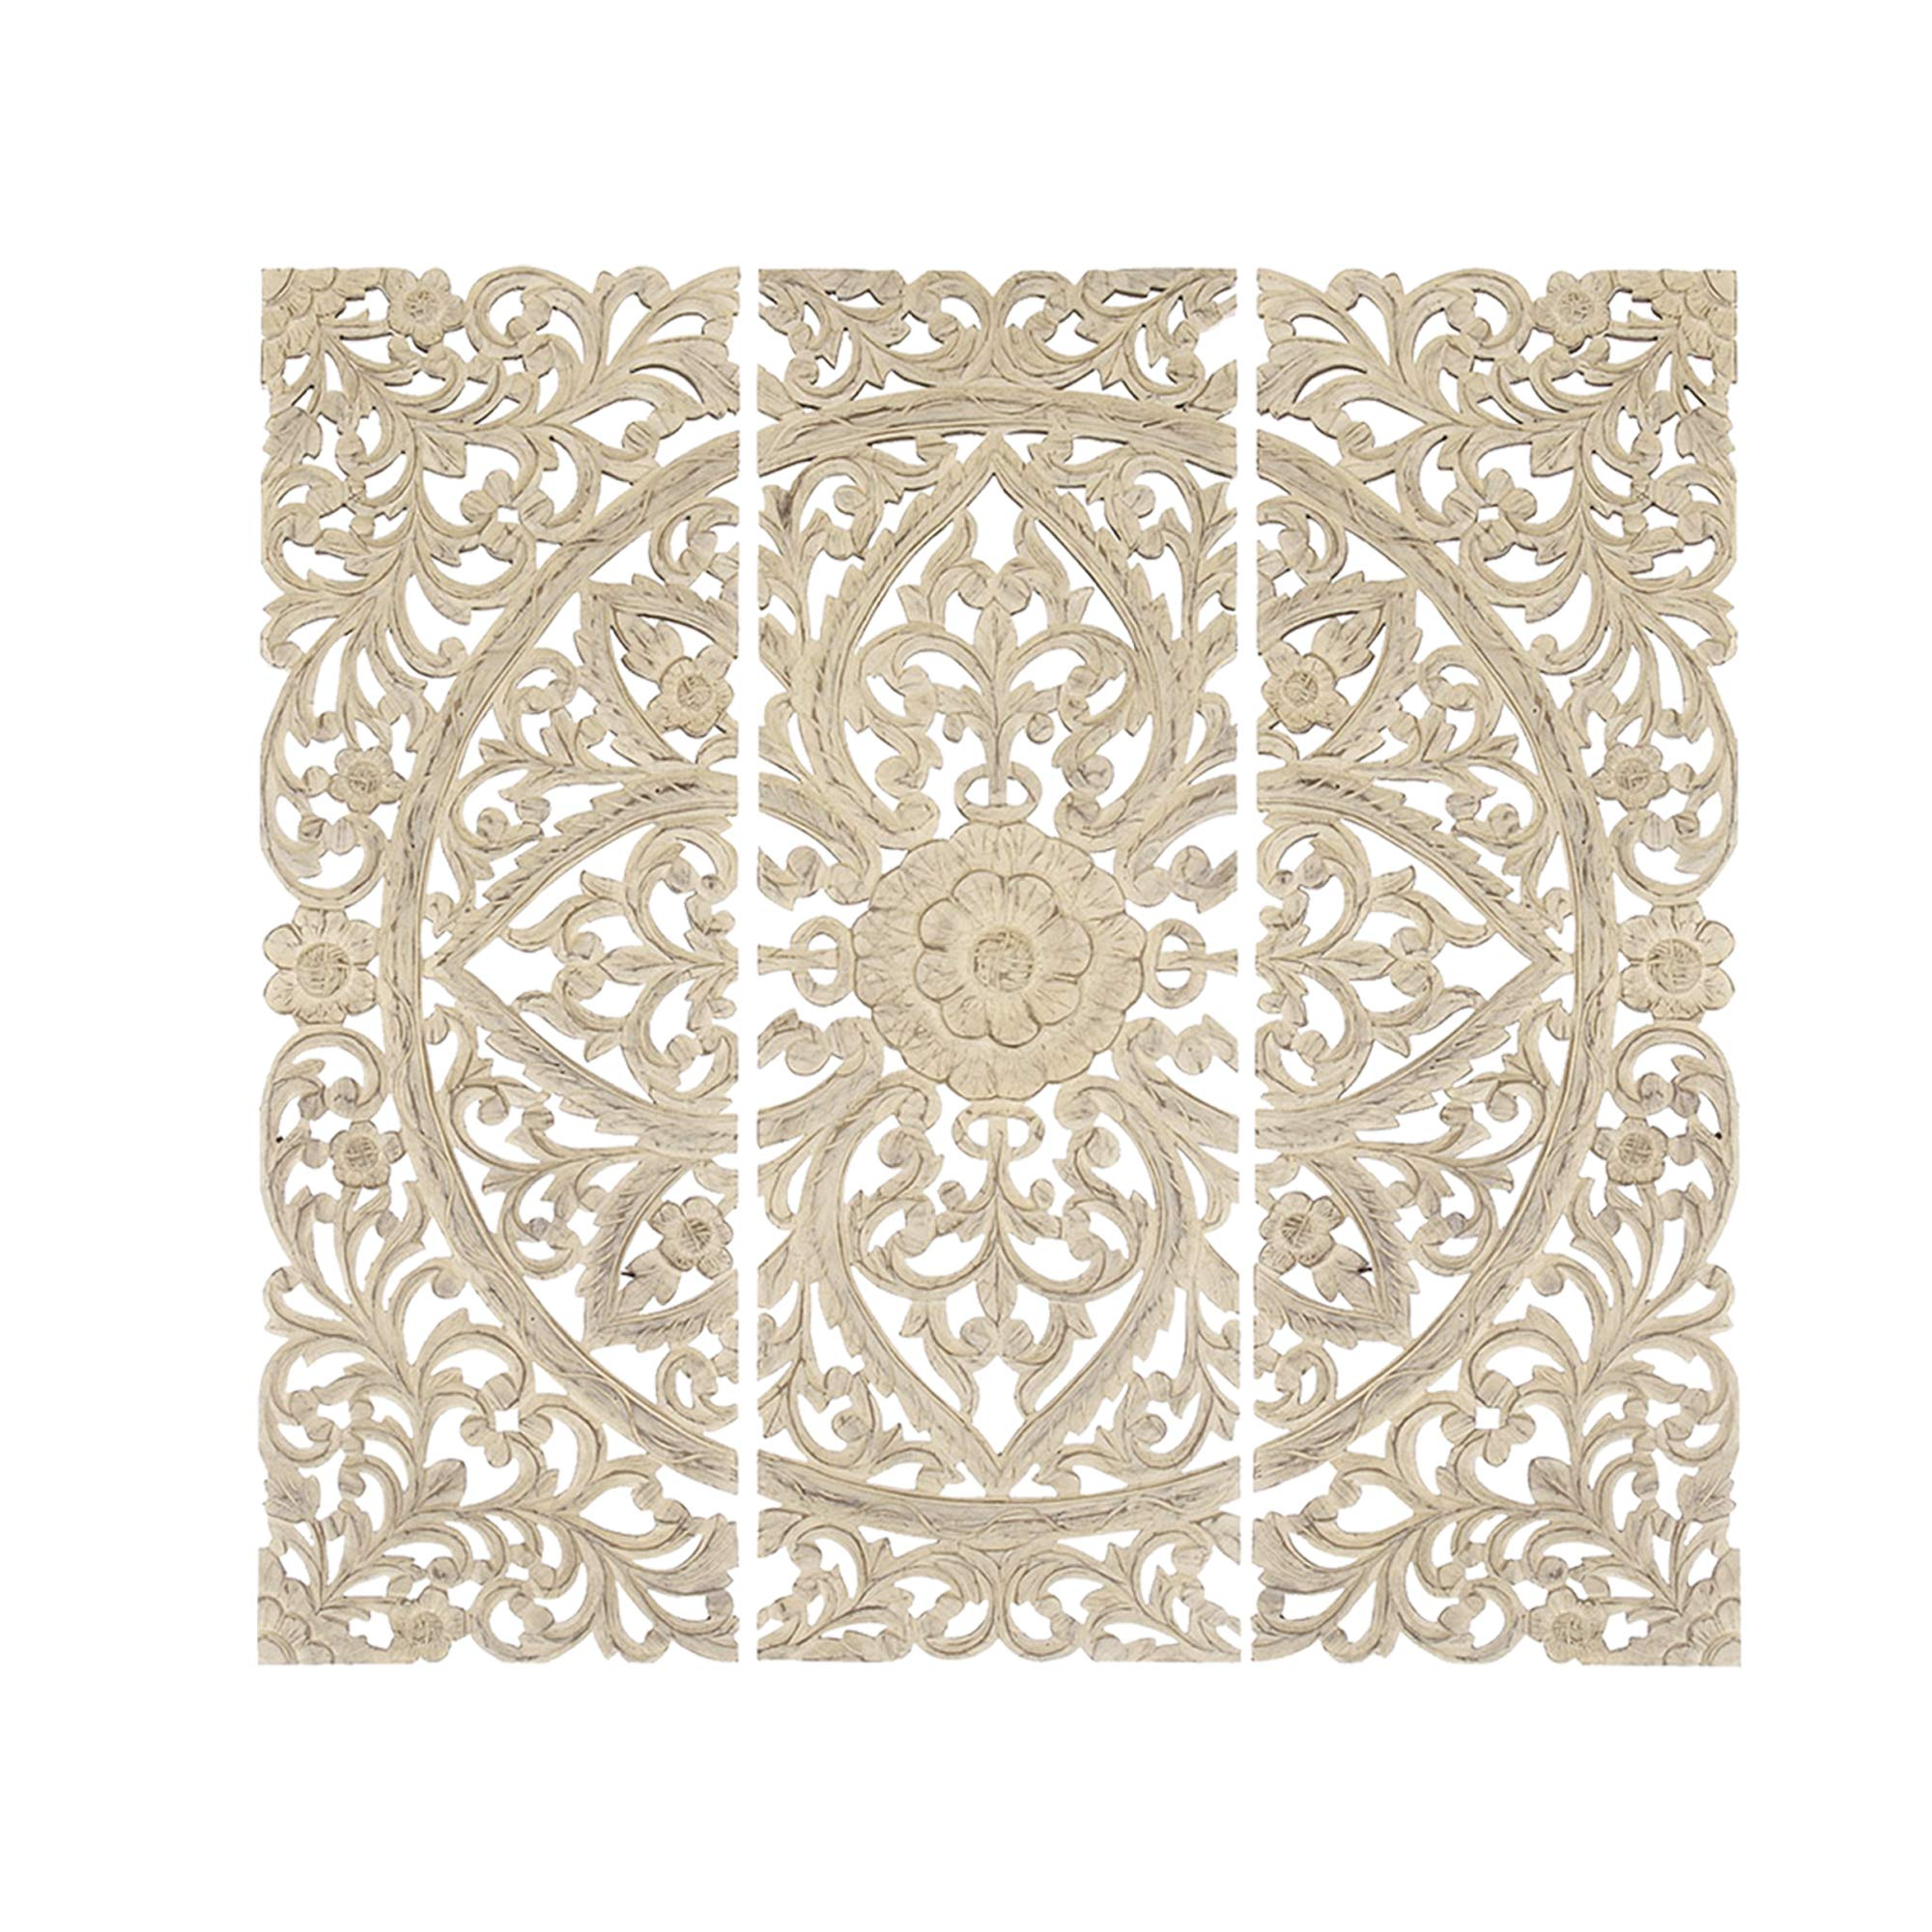 Benzara BM00070 Floral Hand Carved Wooden Wall Plaque, Antique White, Set of 3, Light by Benzara